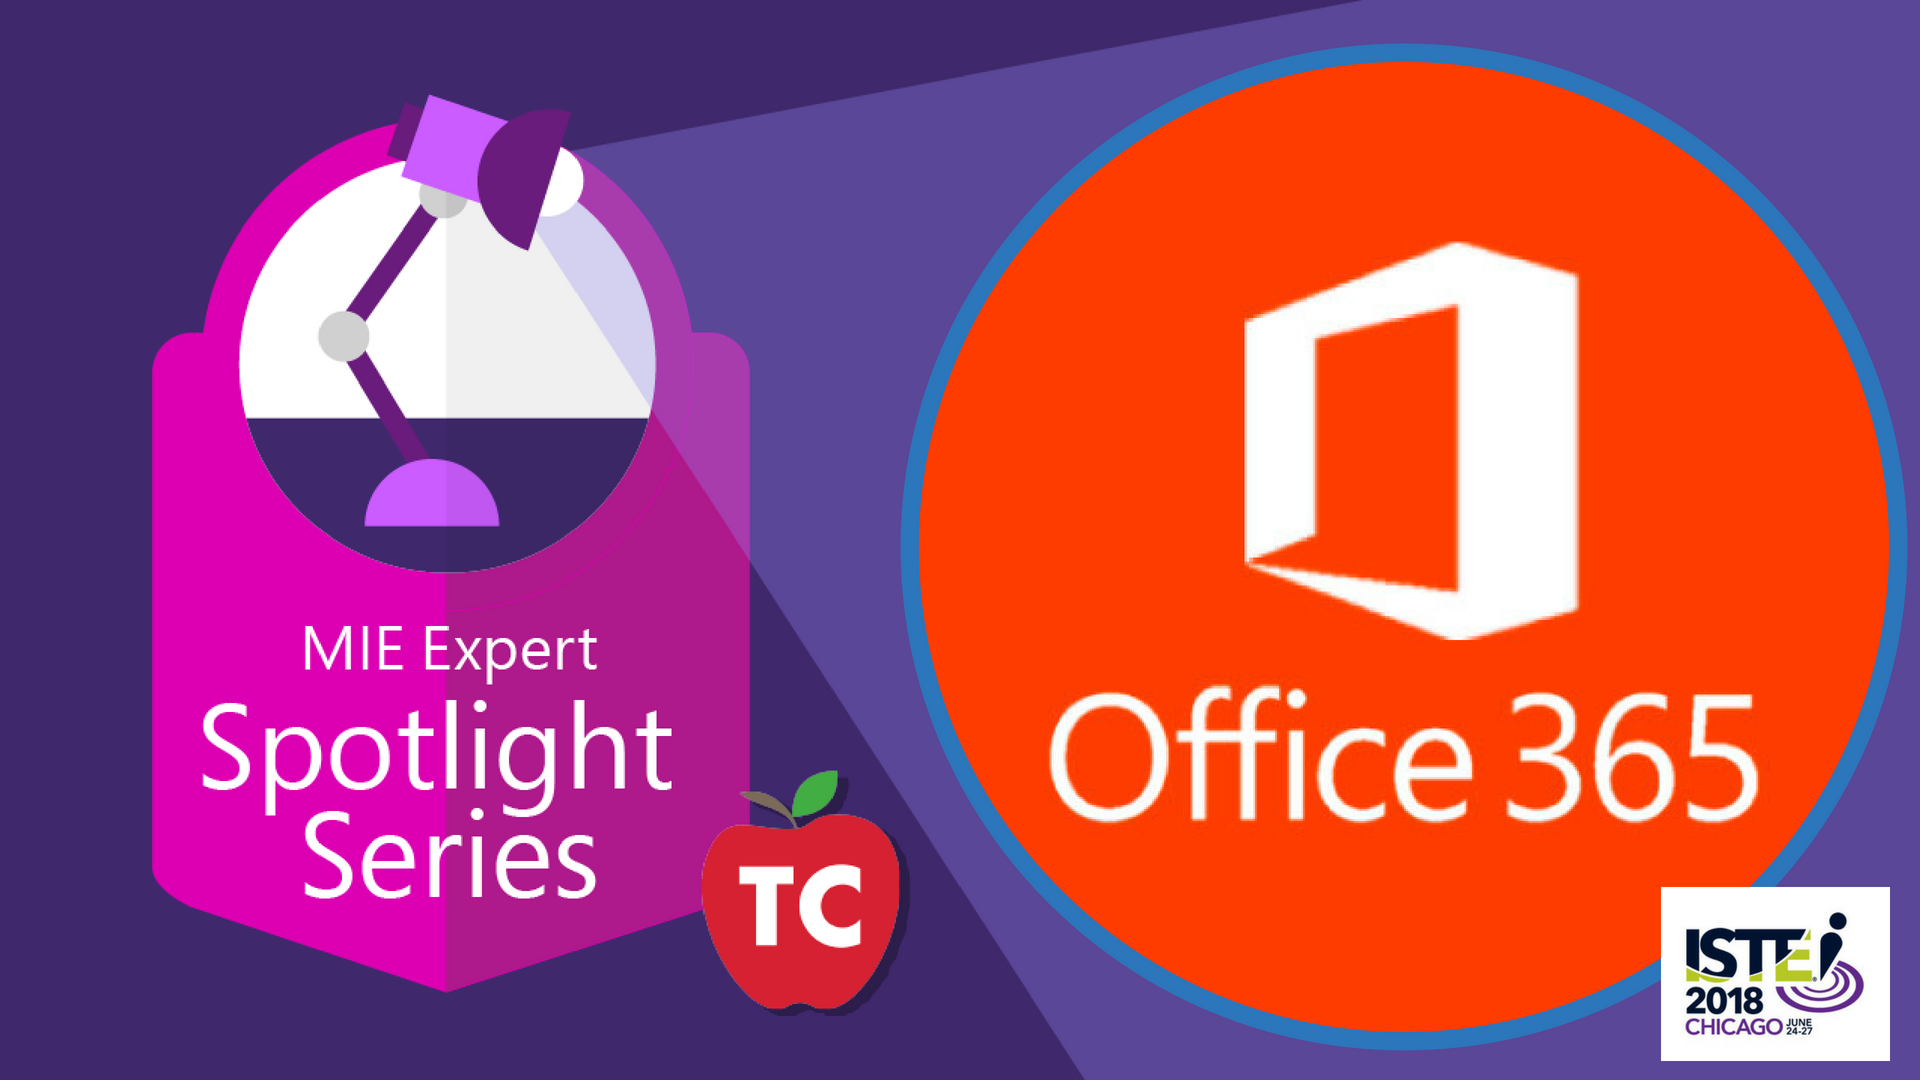 MIE Office 365 ISTE Bumper